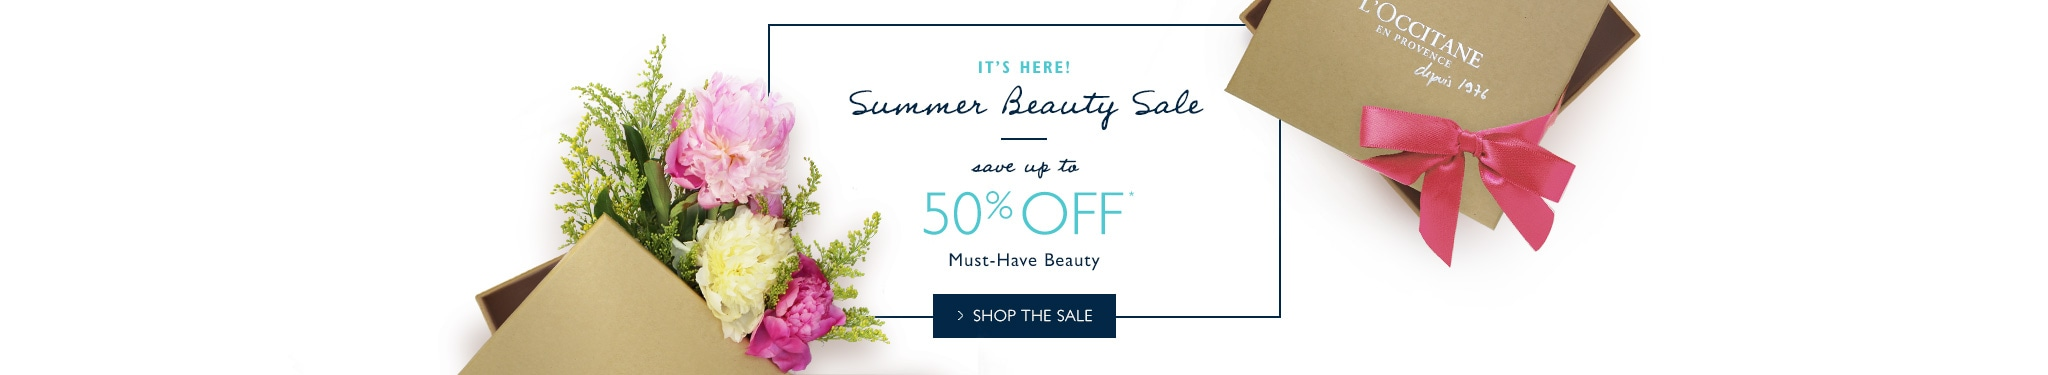 Summer Beauty Sale